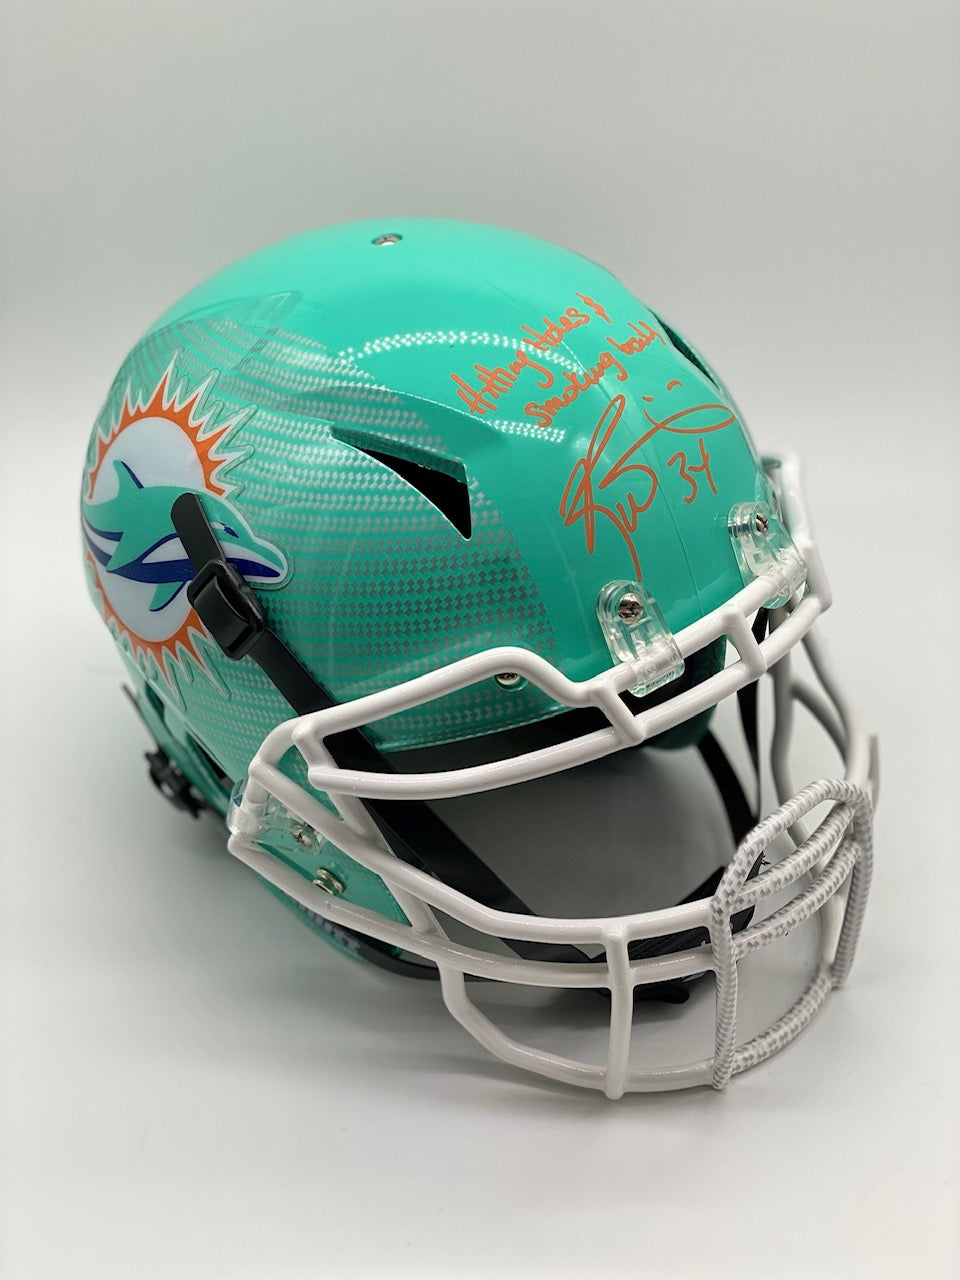 Personalized Hydro Helmet - Teal Carbon Fiber